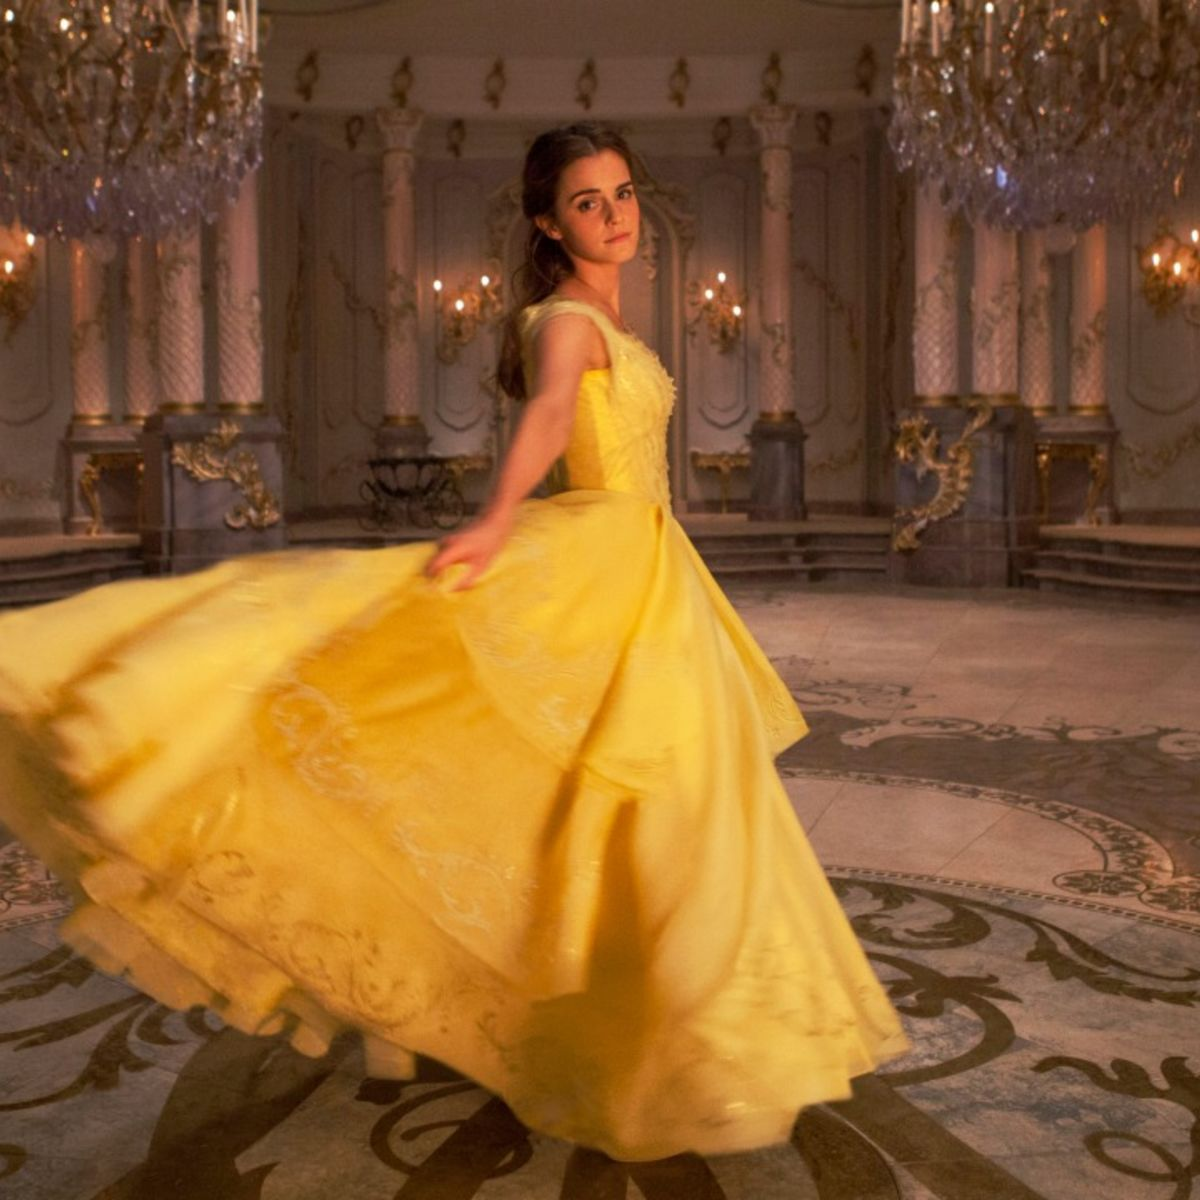 Beauty-and-the-Beast-Emma-Watson.jpg